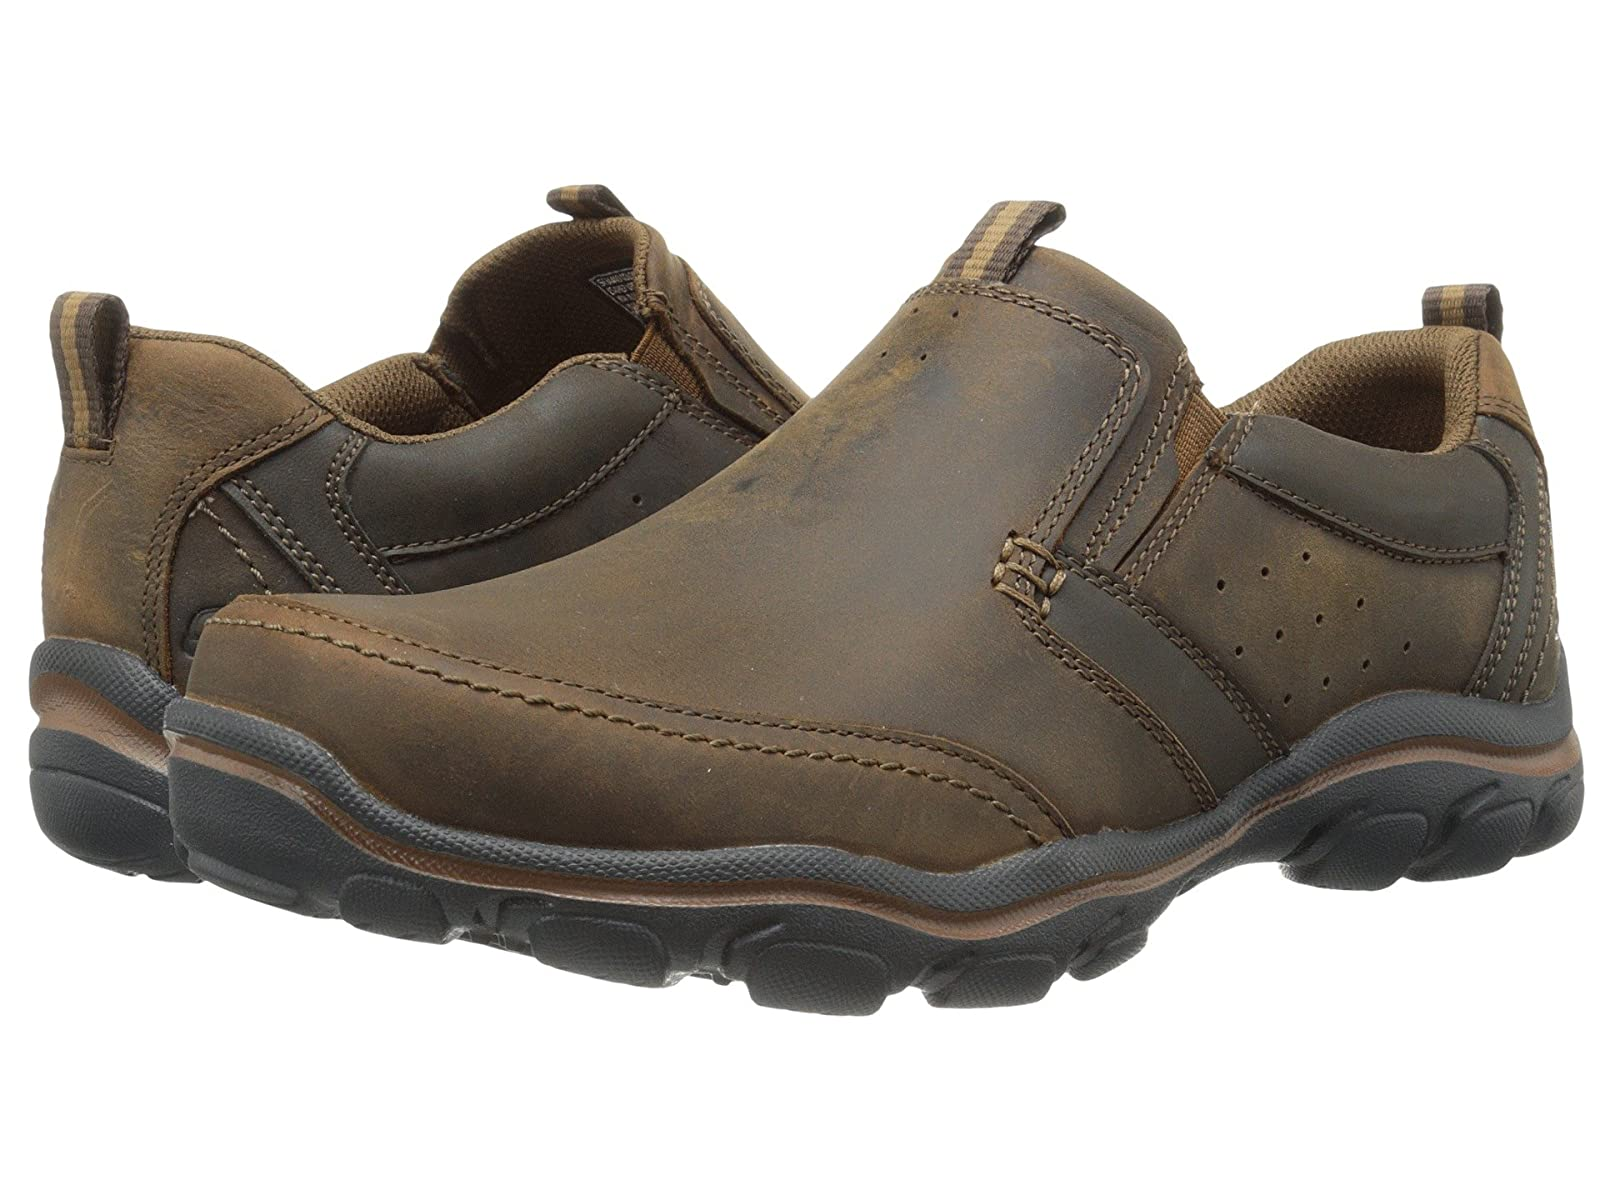 SKECHERS Relaxed Fit®: Montz - DeventCheap and distinctive eye-catching shoes